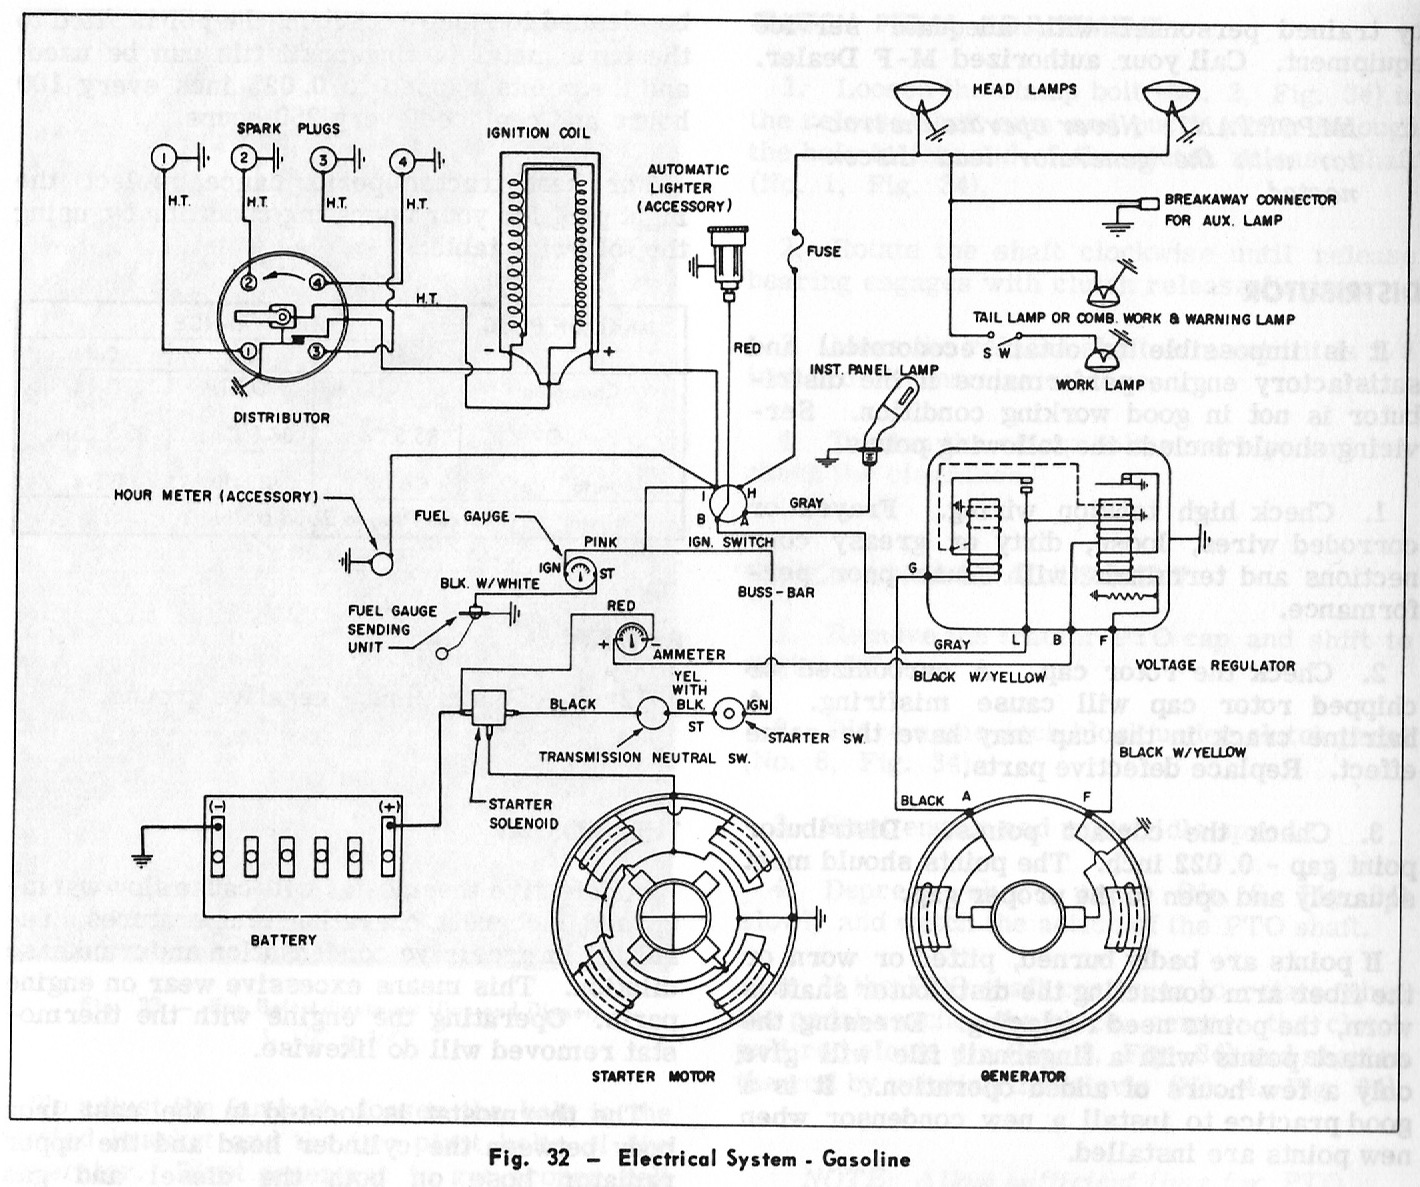 kenwood kdc 316s wiring diagram